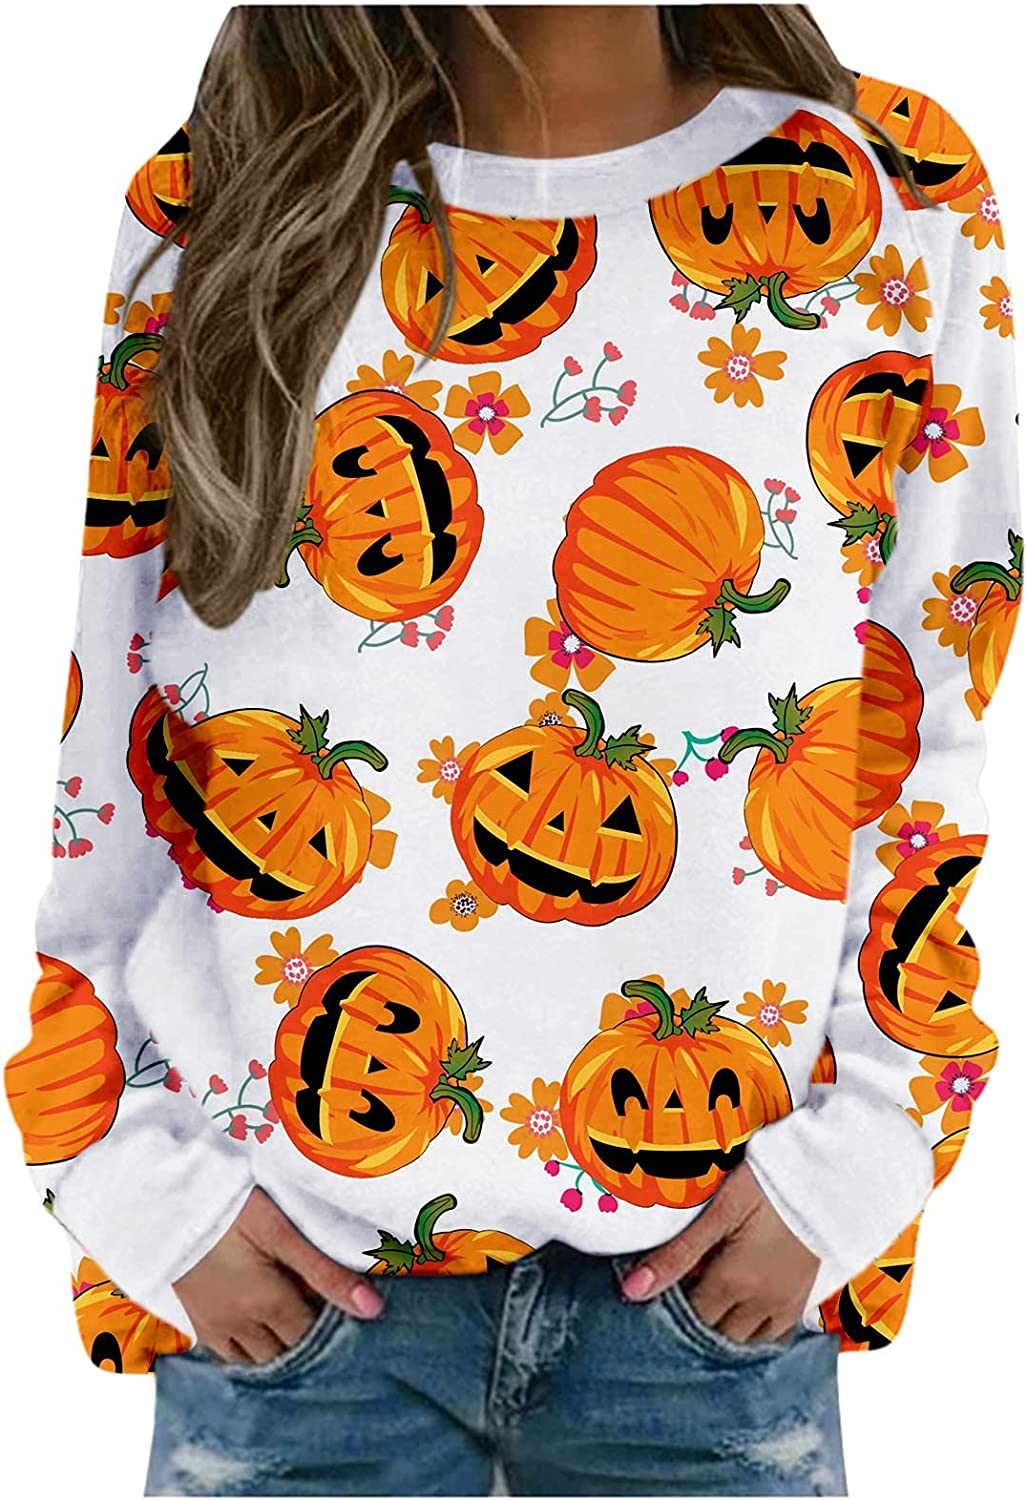 AODONG Sweatshirts for Women Pullover Graphic Festival Pumpkin Casual Long Sleeve Crewneck Sweaters Shirts Hoodies Tops